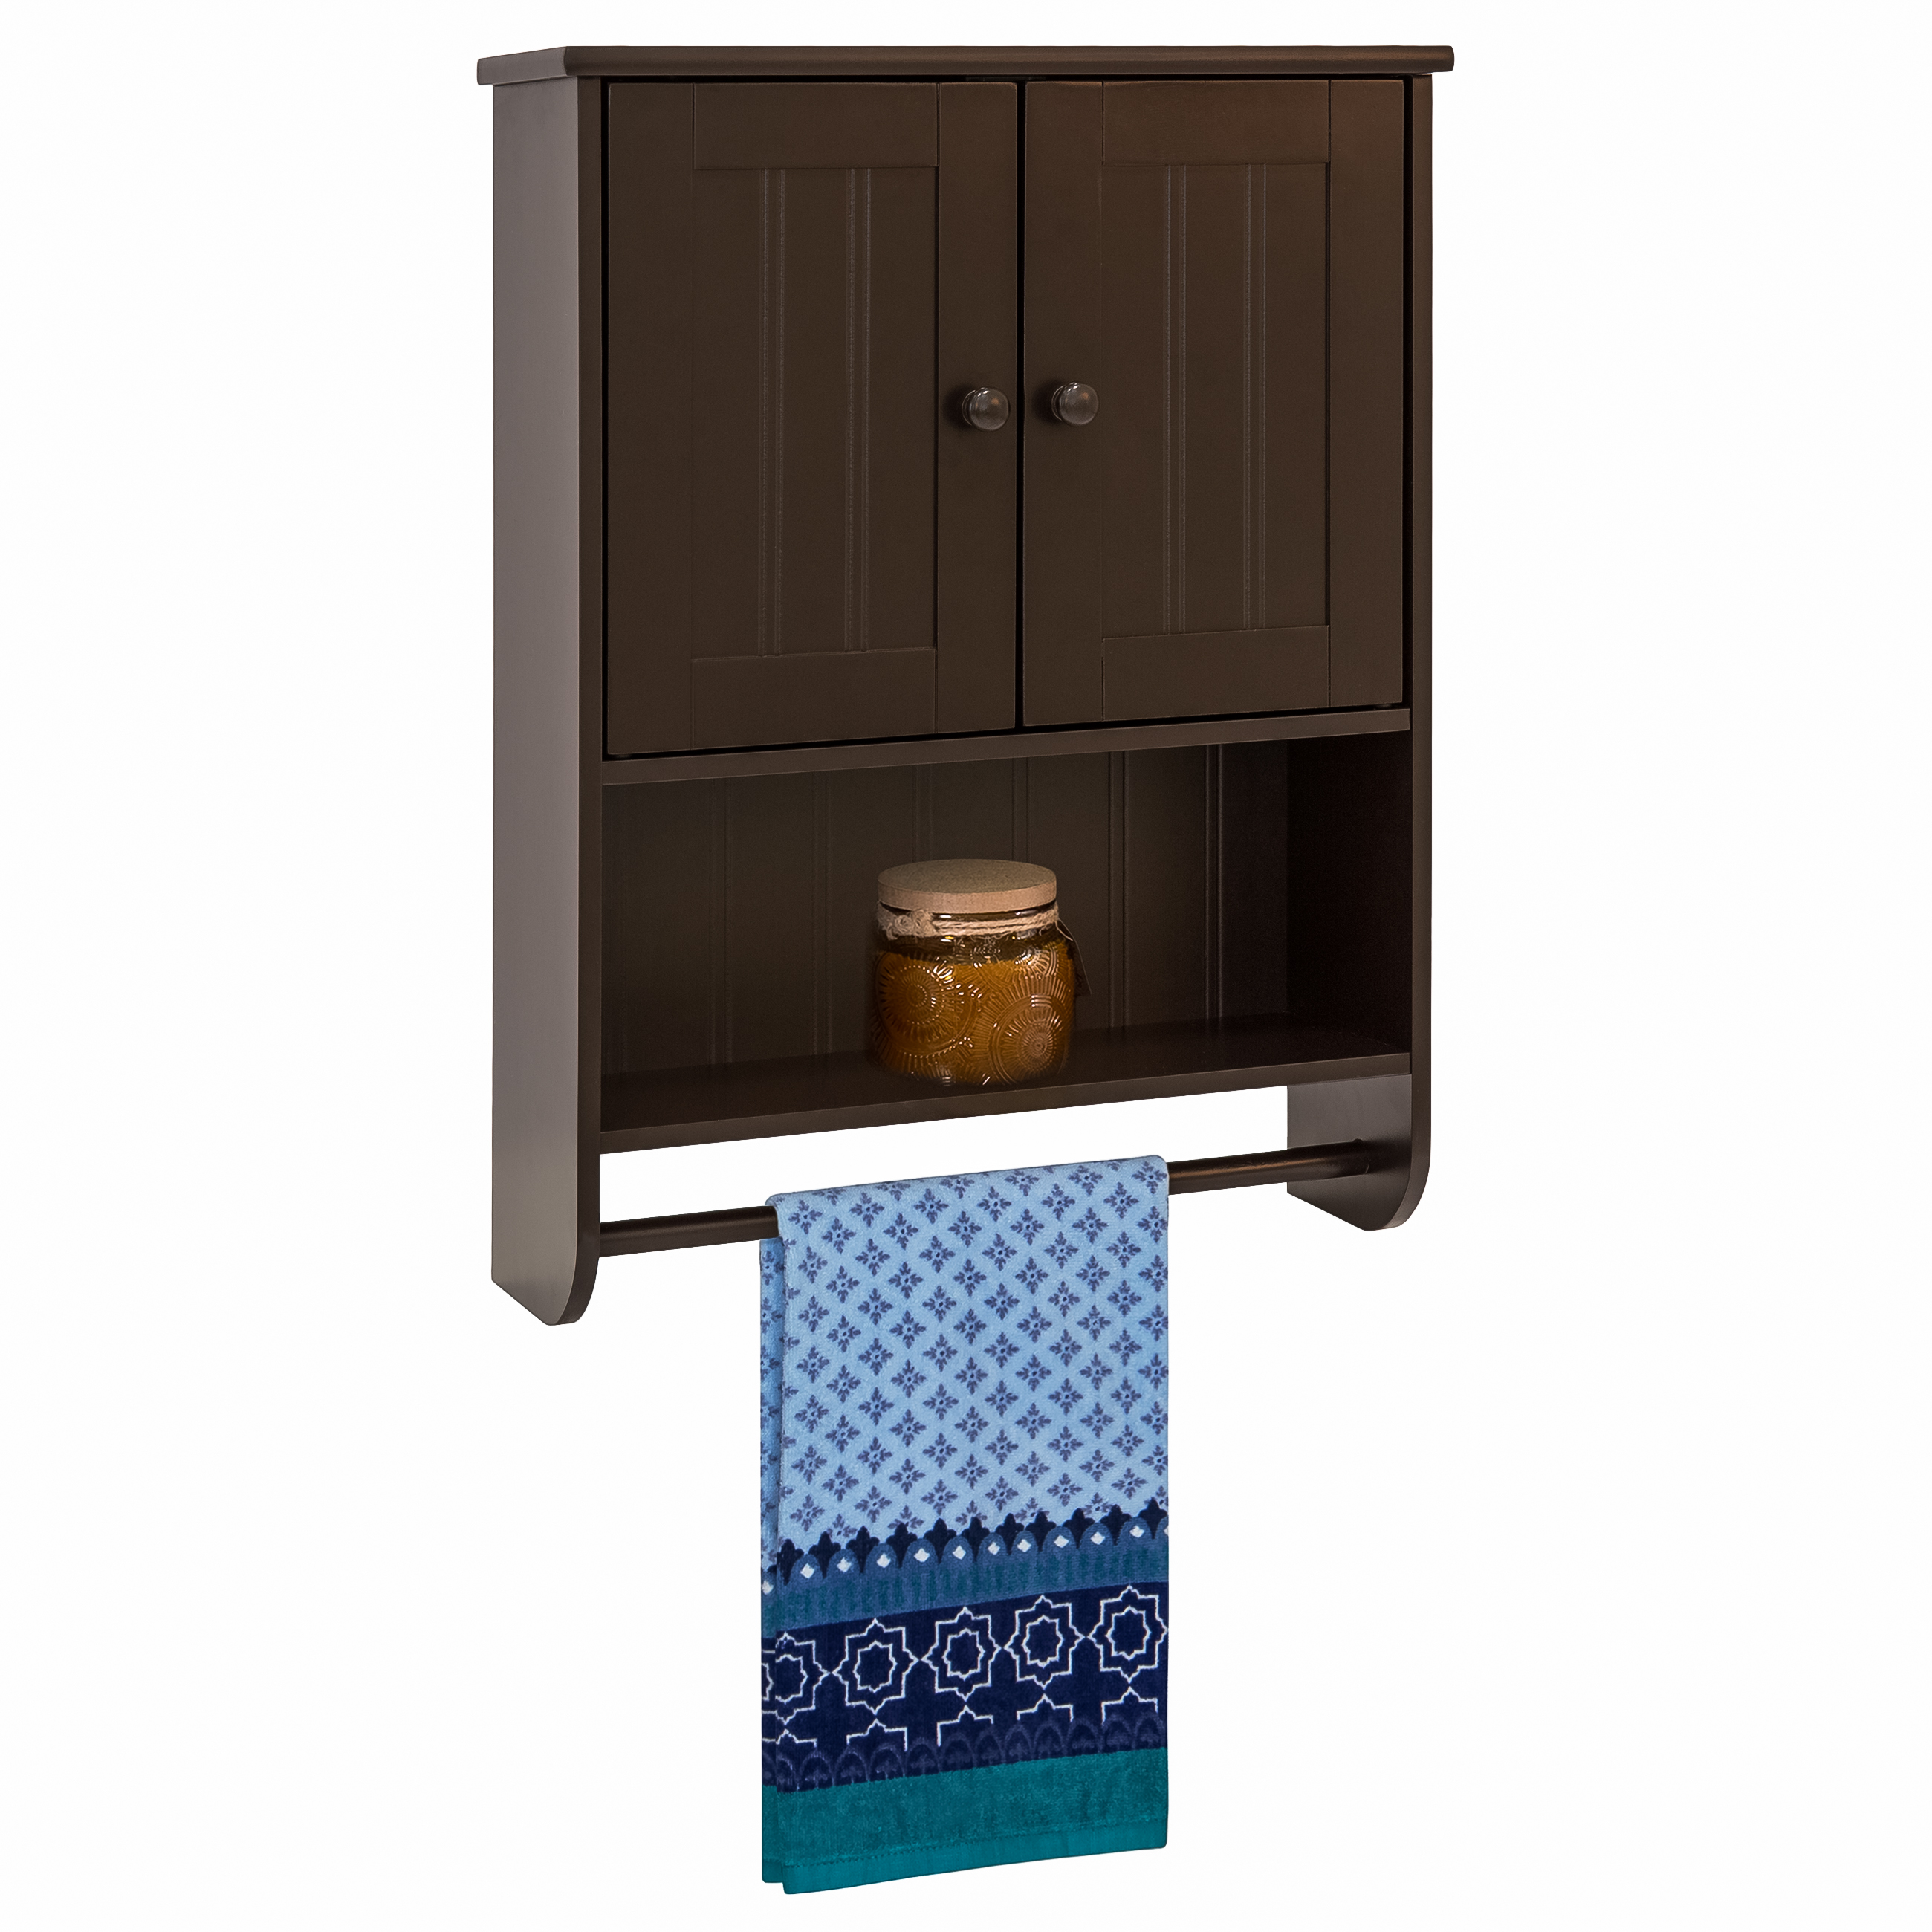 bathroom wall cabinets espresso best choice products doors bathroom wall storage 17101